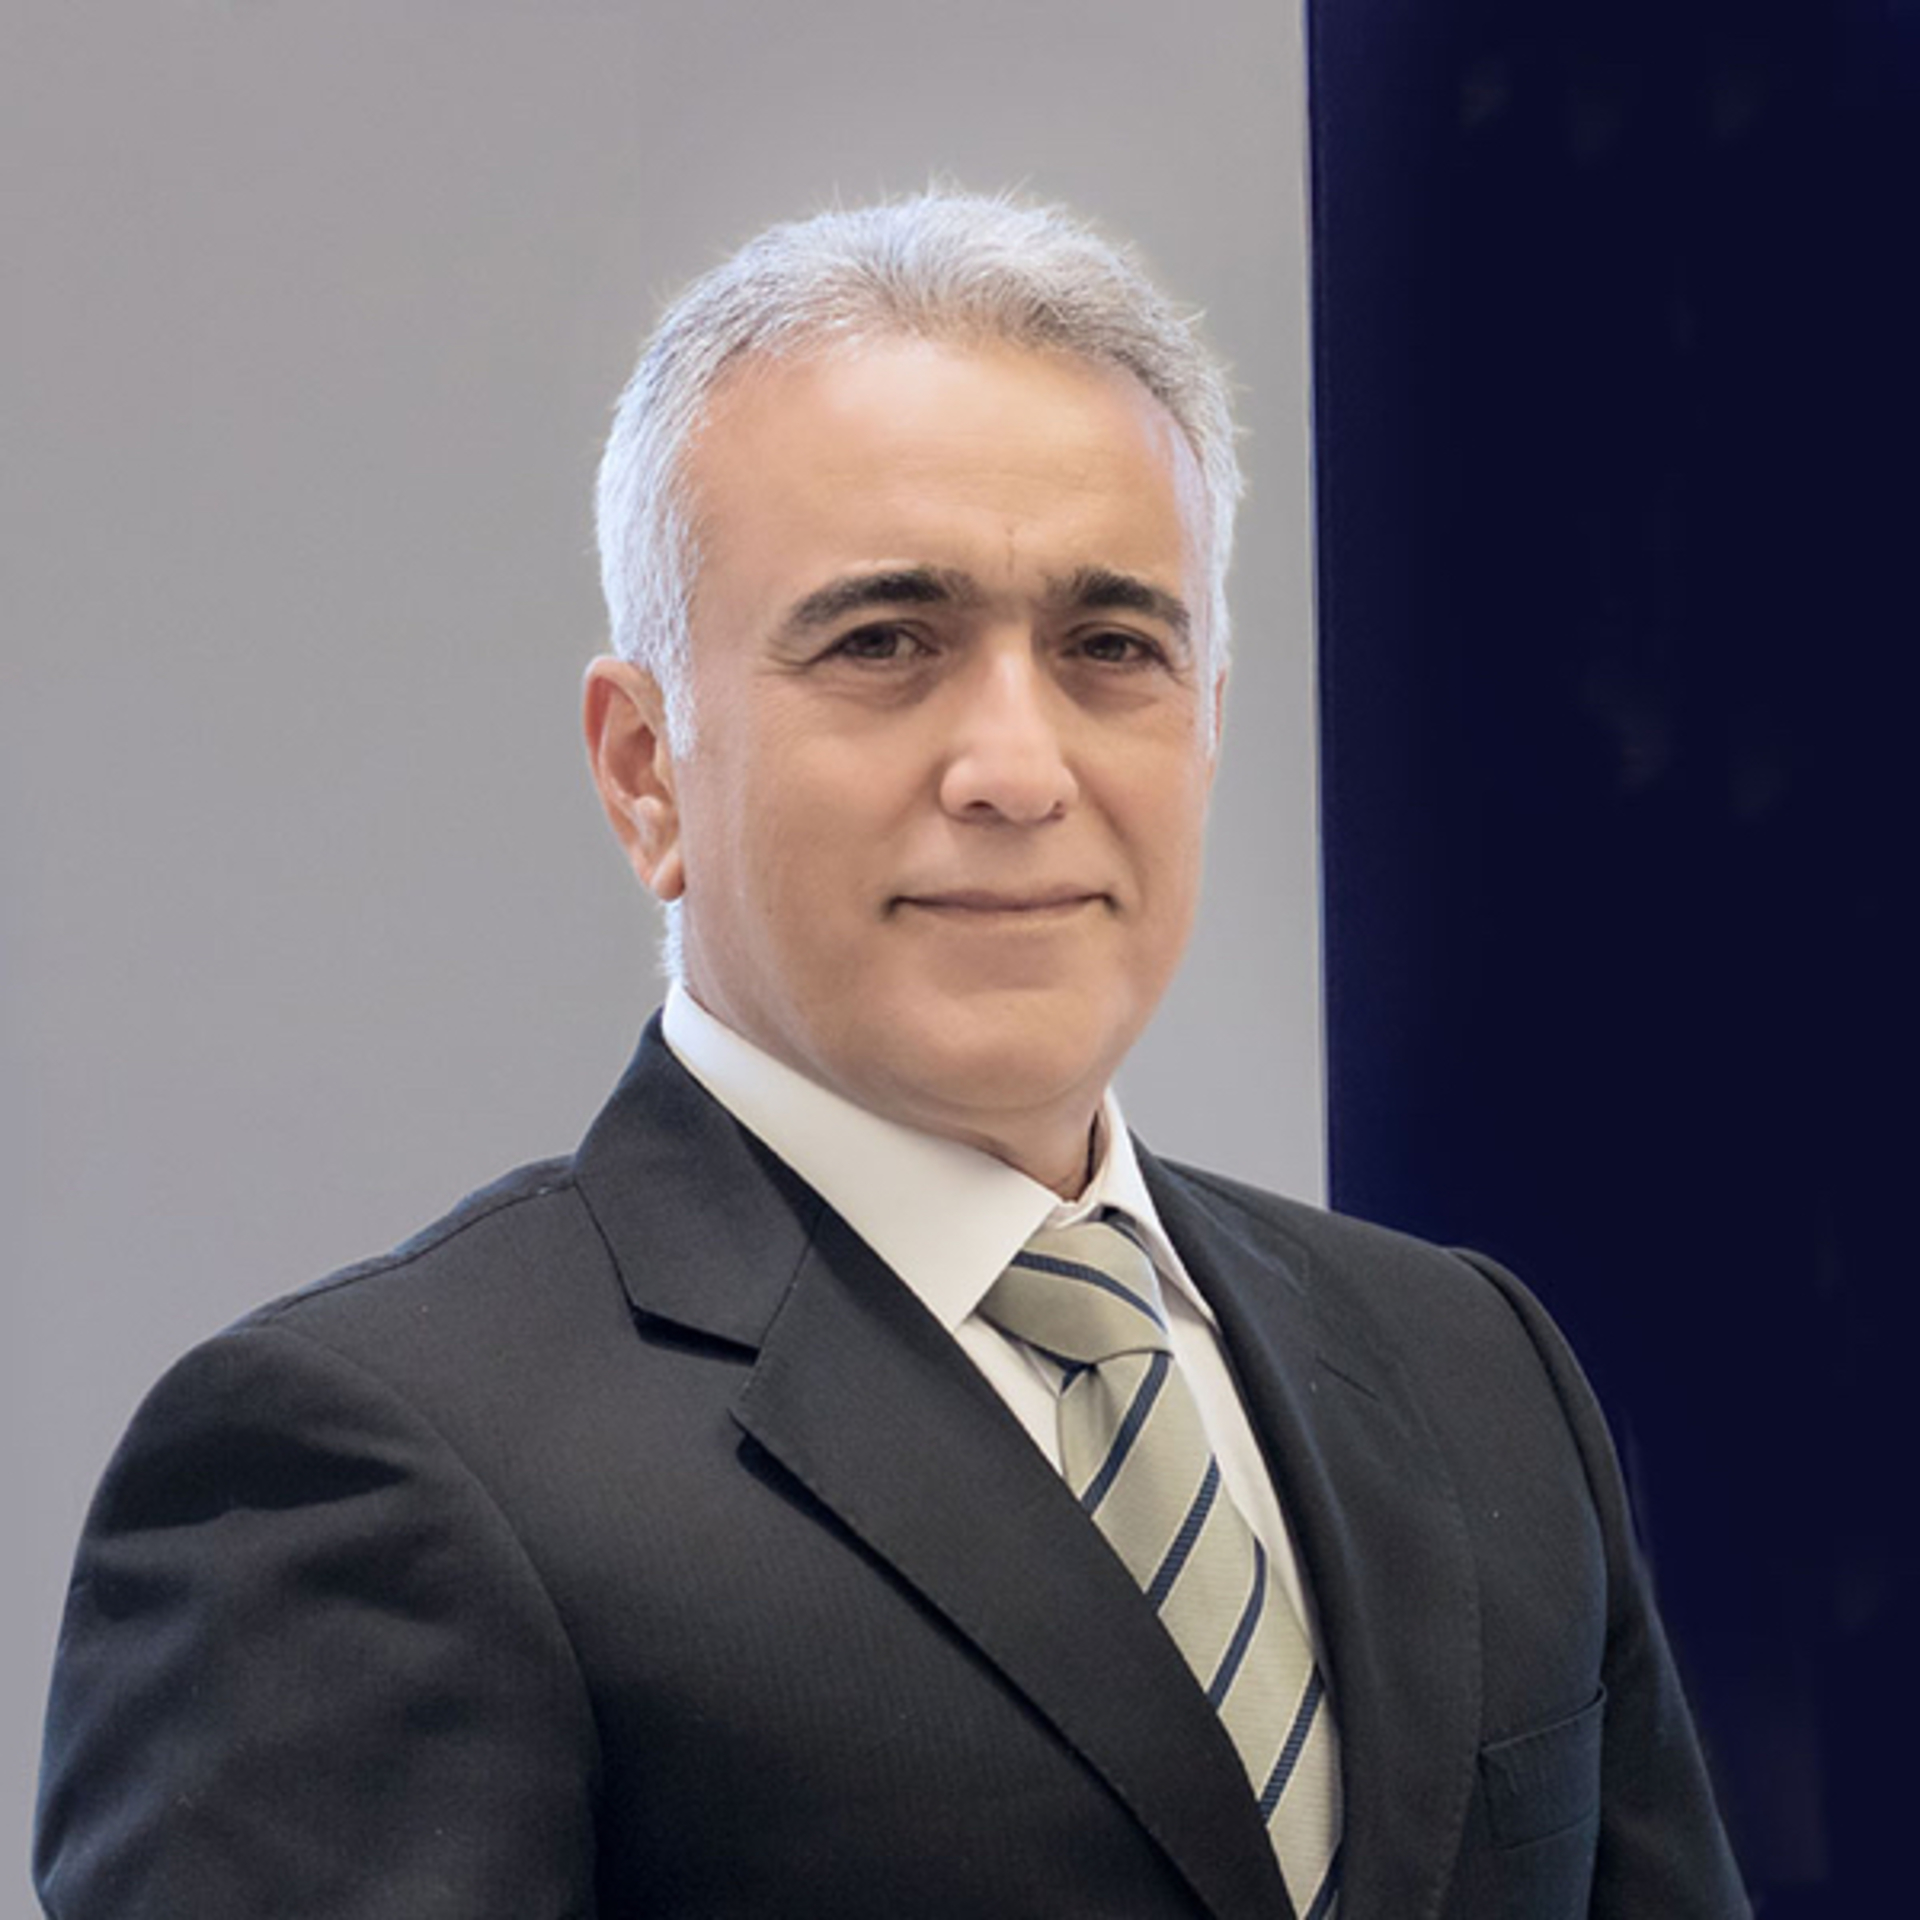 Ibrahim Sabbagh